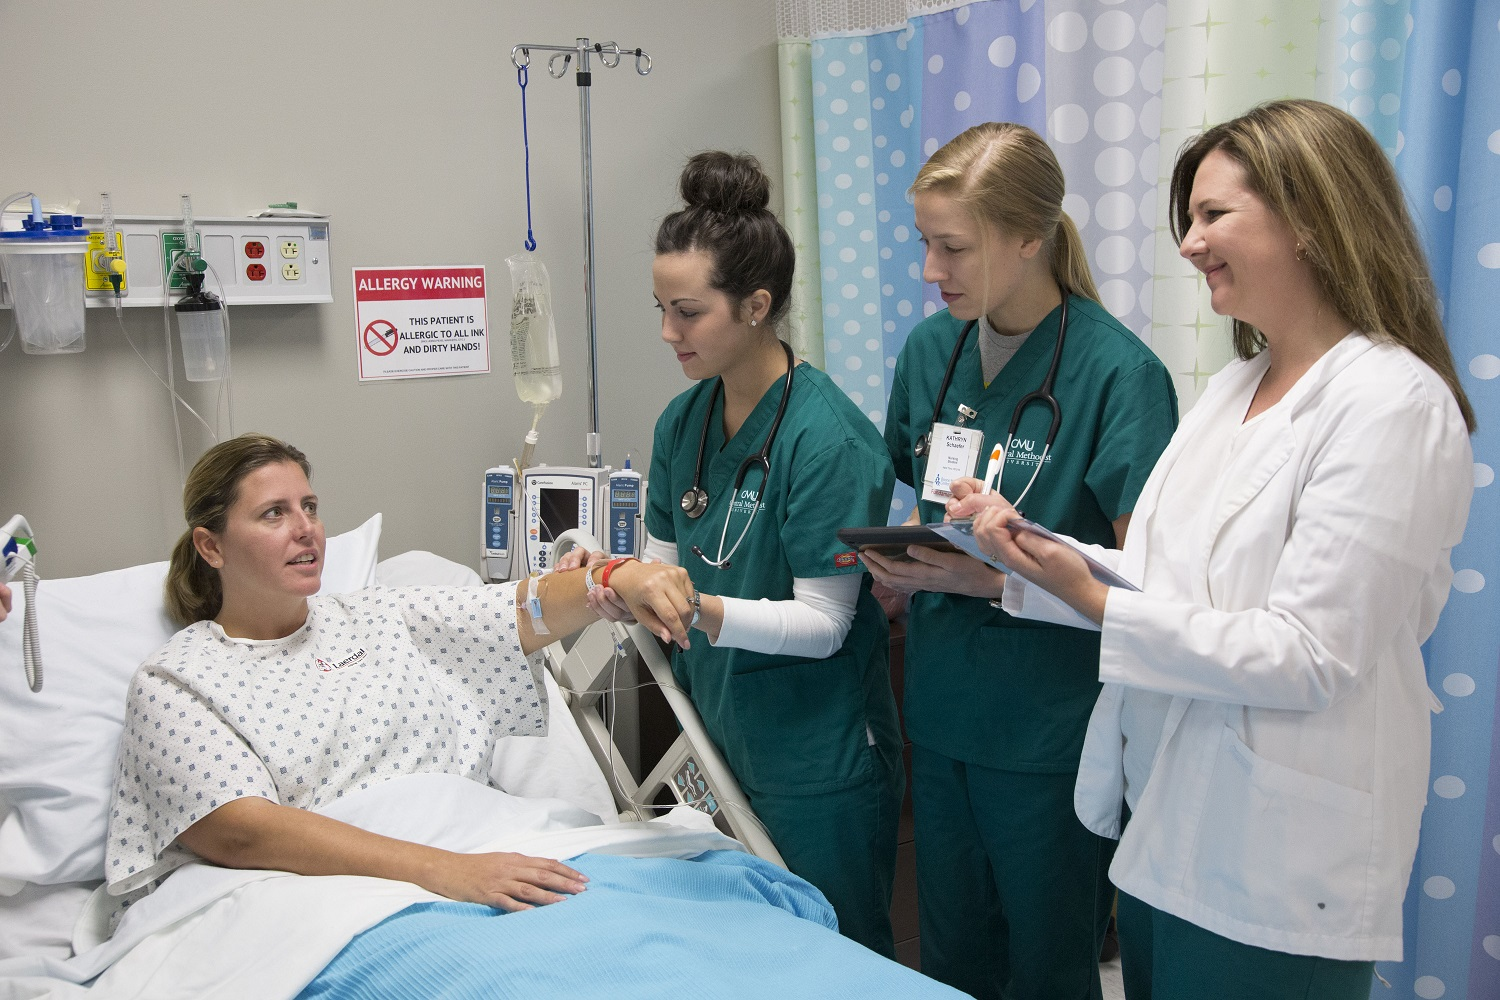 Allied Health students with a patient